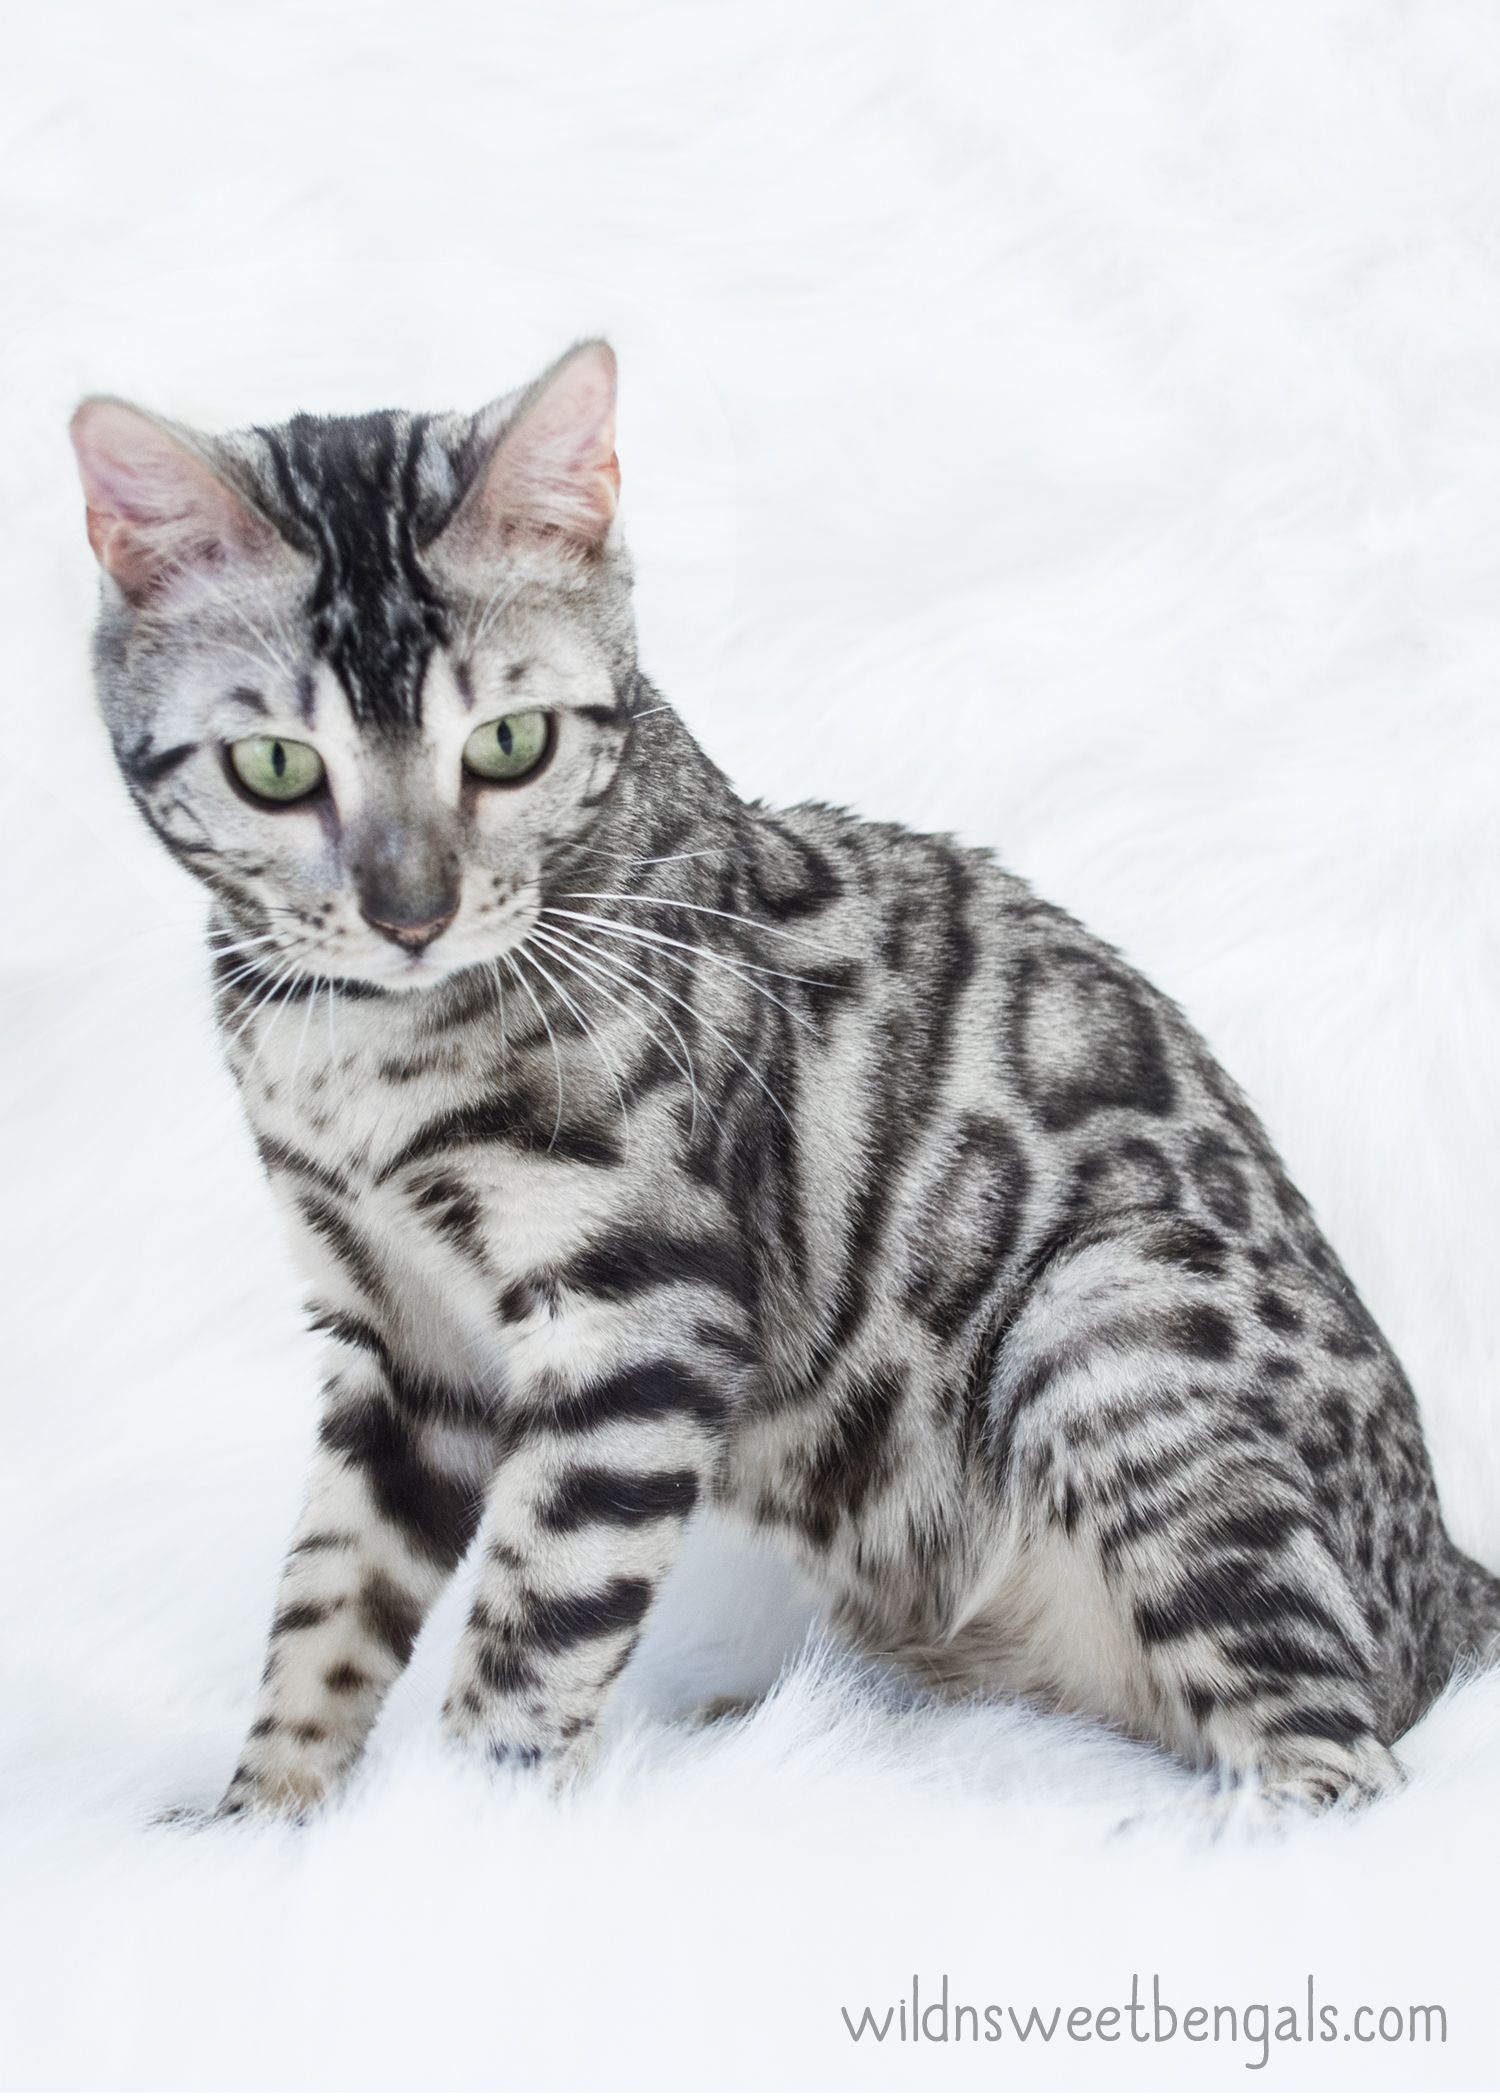 One of our beautiful silver bengal queens at Wild N Sweet Bengals ...